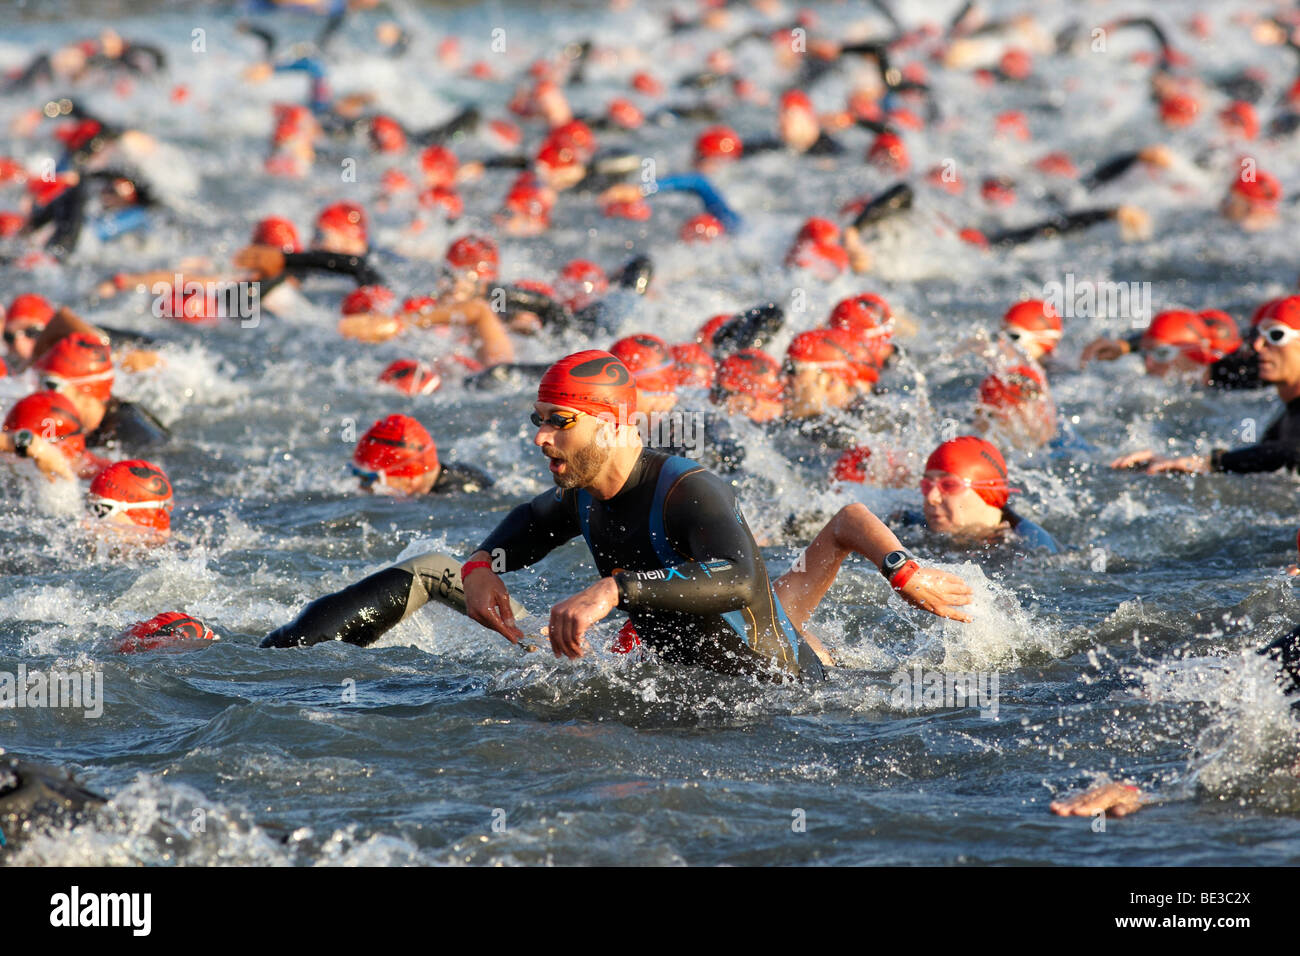 Compétition de natation, triathlon, Ironman Allemagne, Francfort, Hesse, Germany, Europe Photo Stock